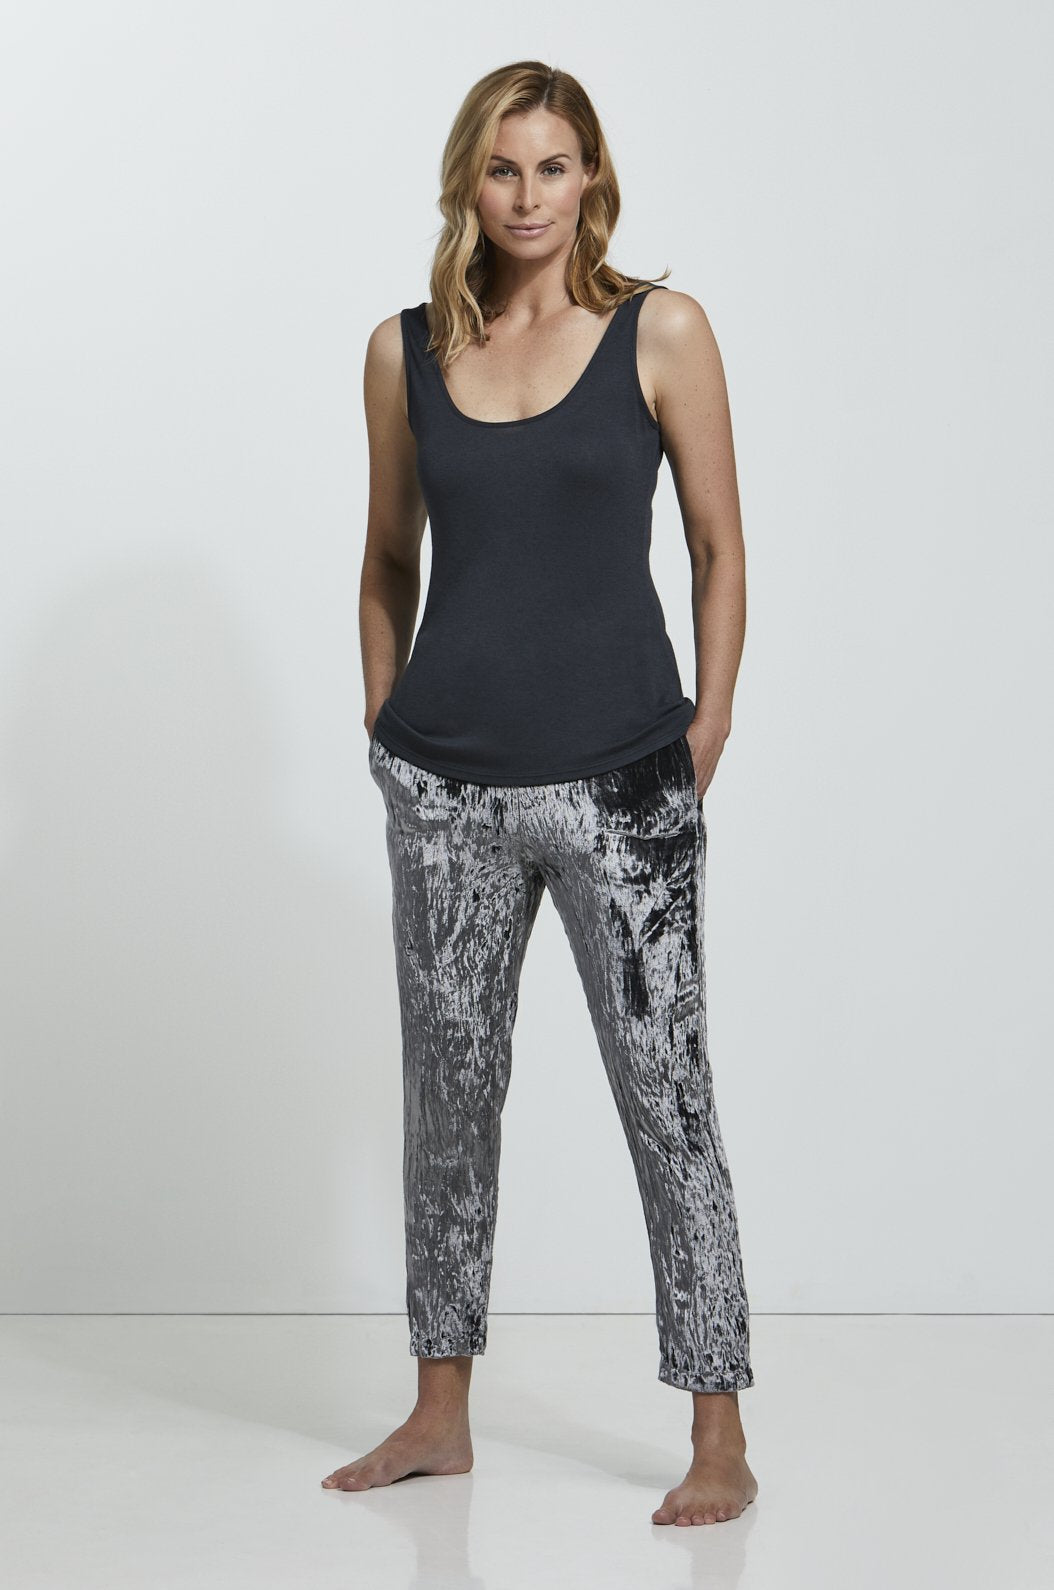 ROYL NYC | Luxury loungewear - CRUSHED VELVET CROPPED PANT | ROYL